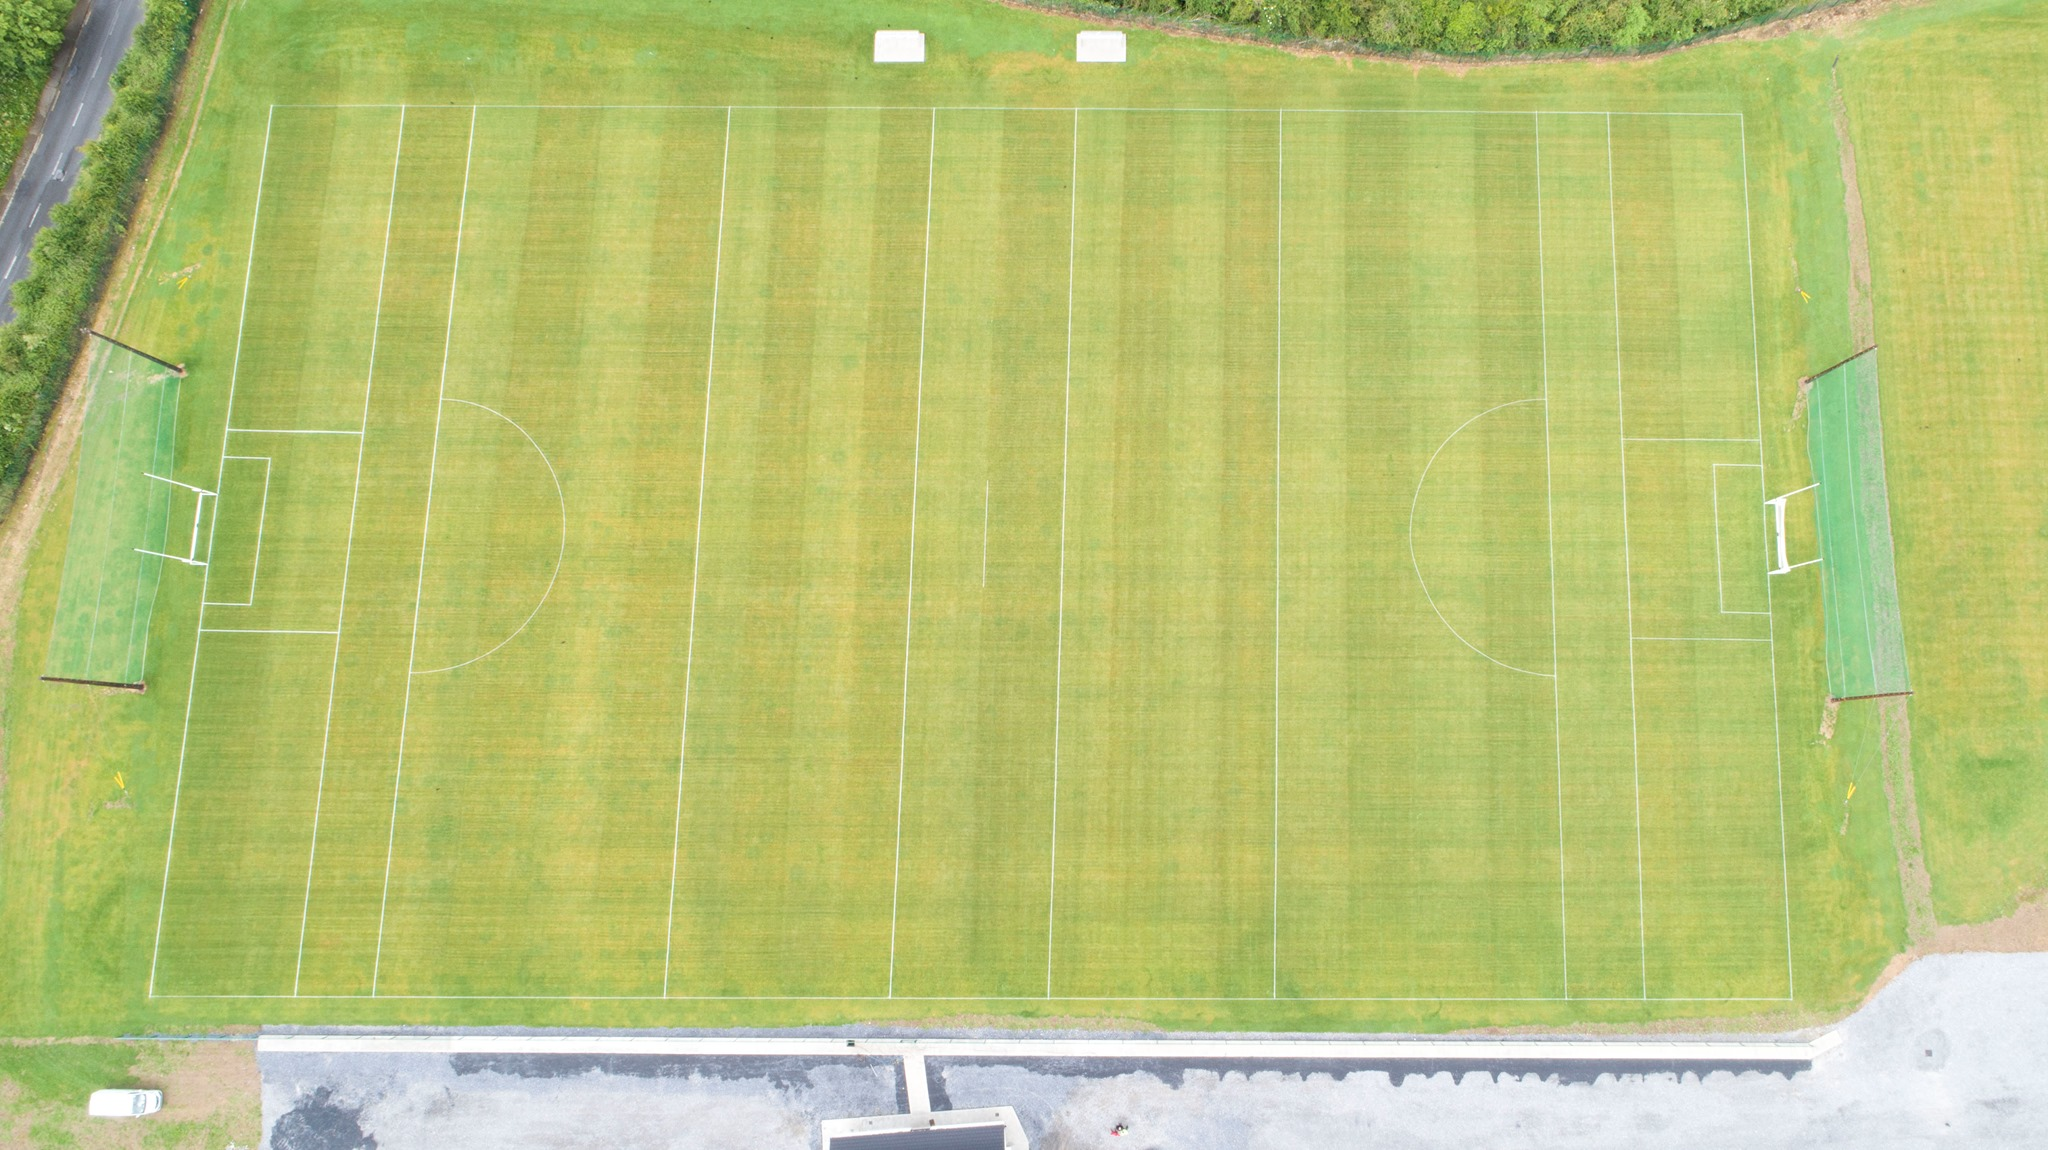 Carrick Swan New Field, Pairc na nEalai from the air